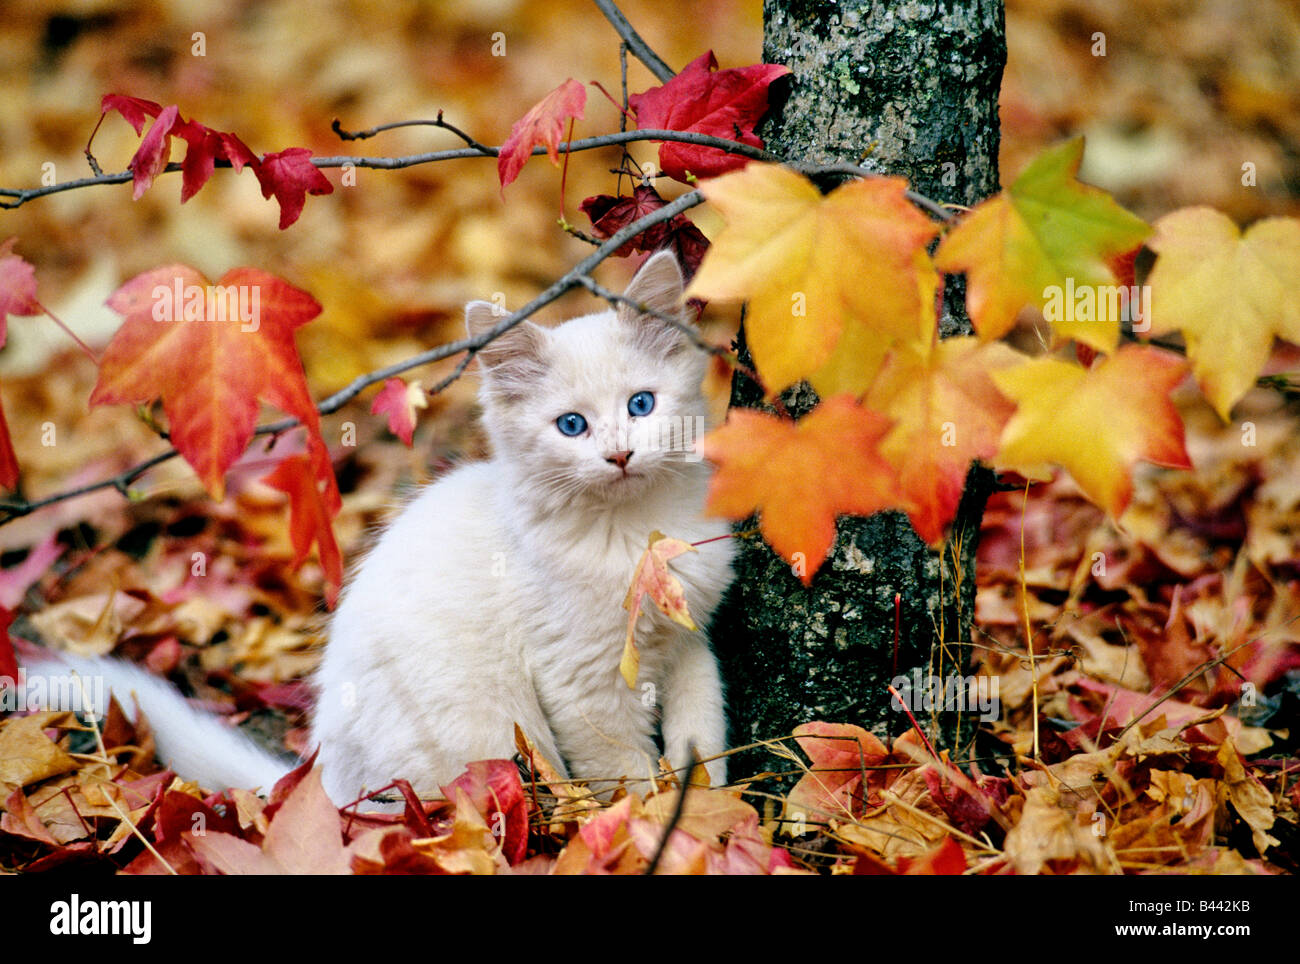 Juvenile kitten, colorful fall foliage. - Stock Image